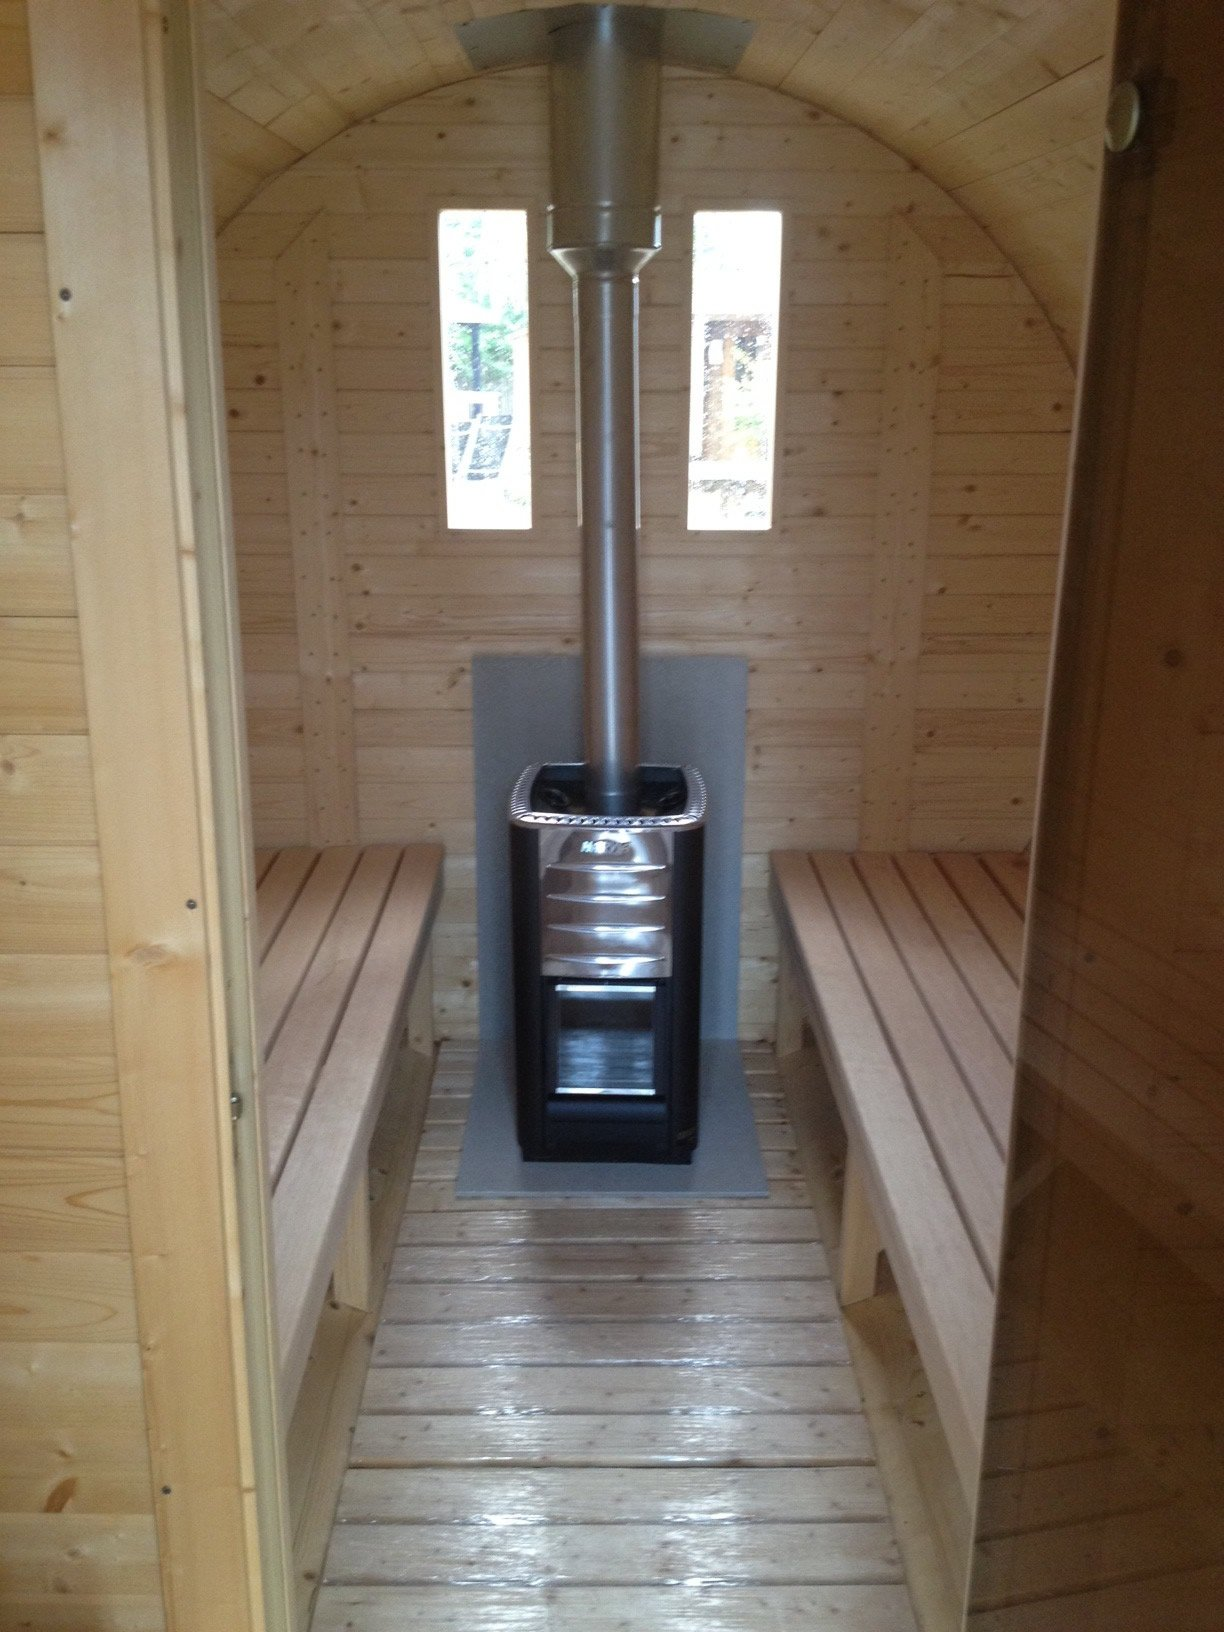 Barrel sauna stove -  larger model